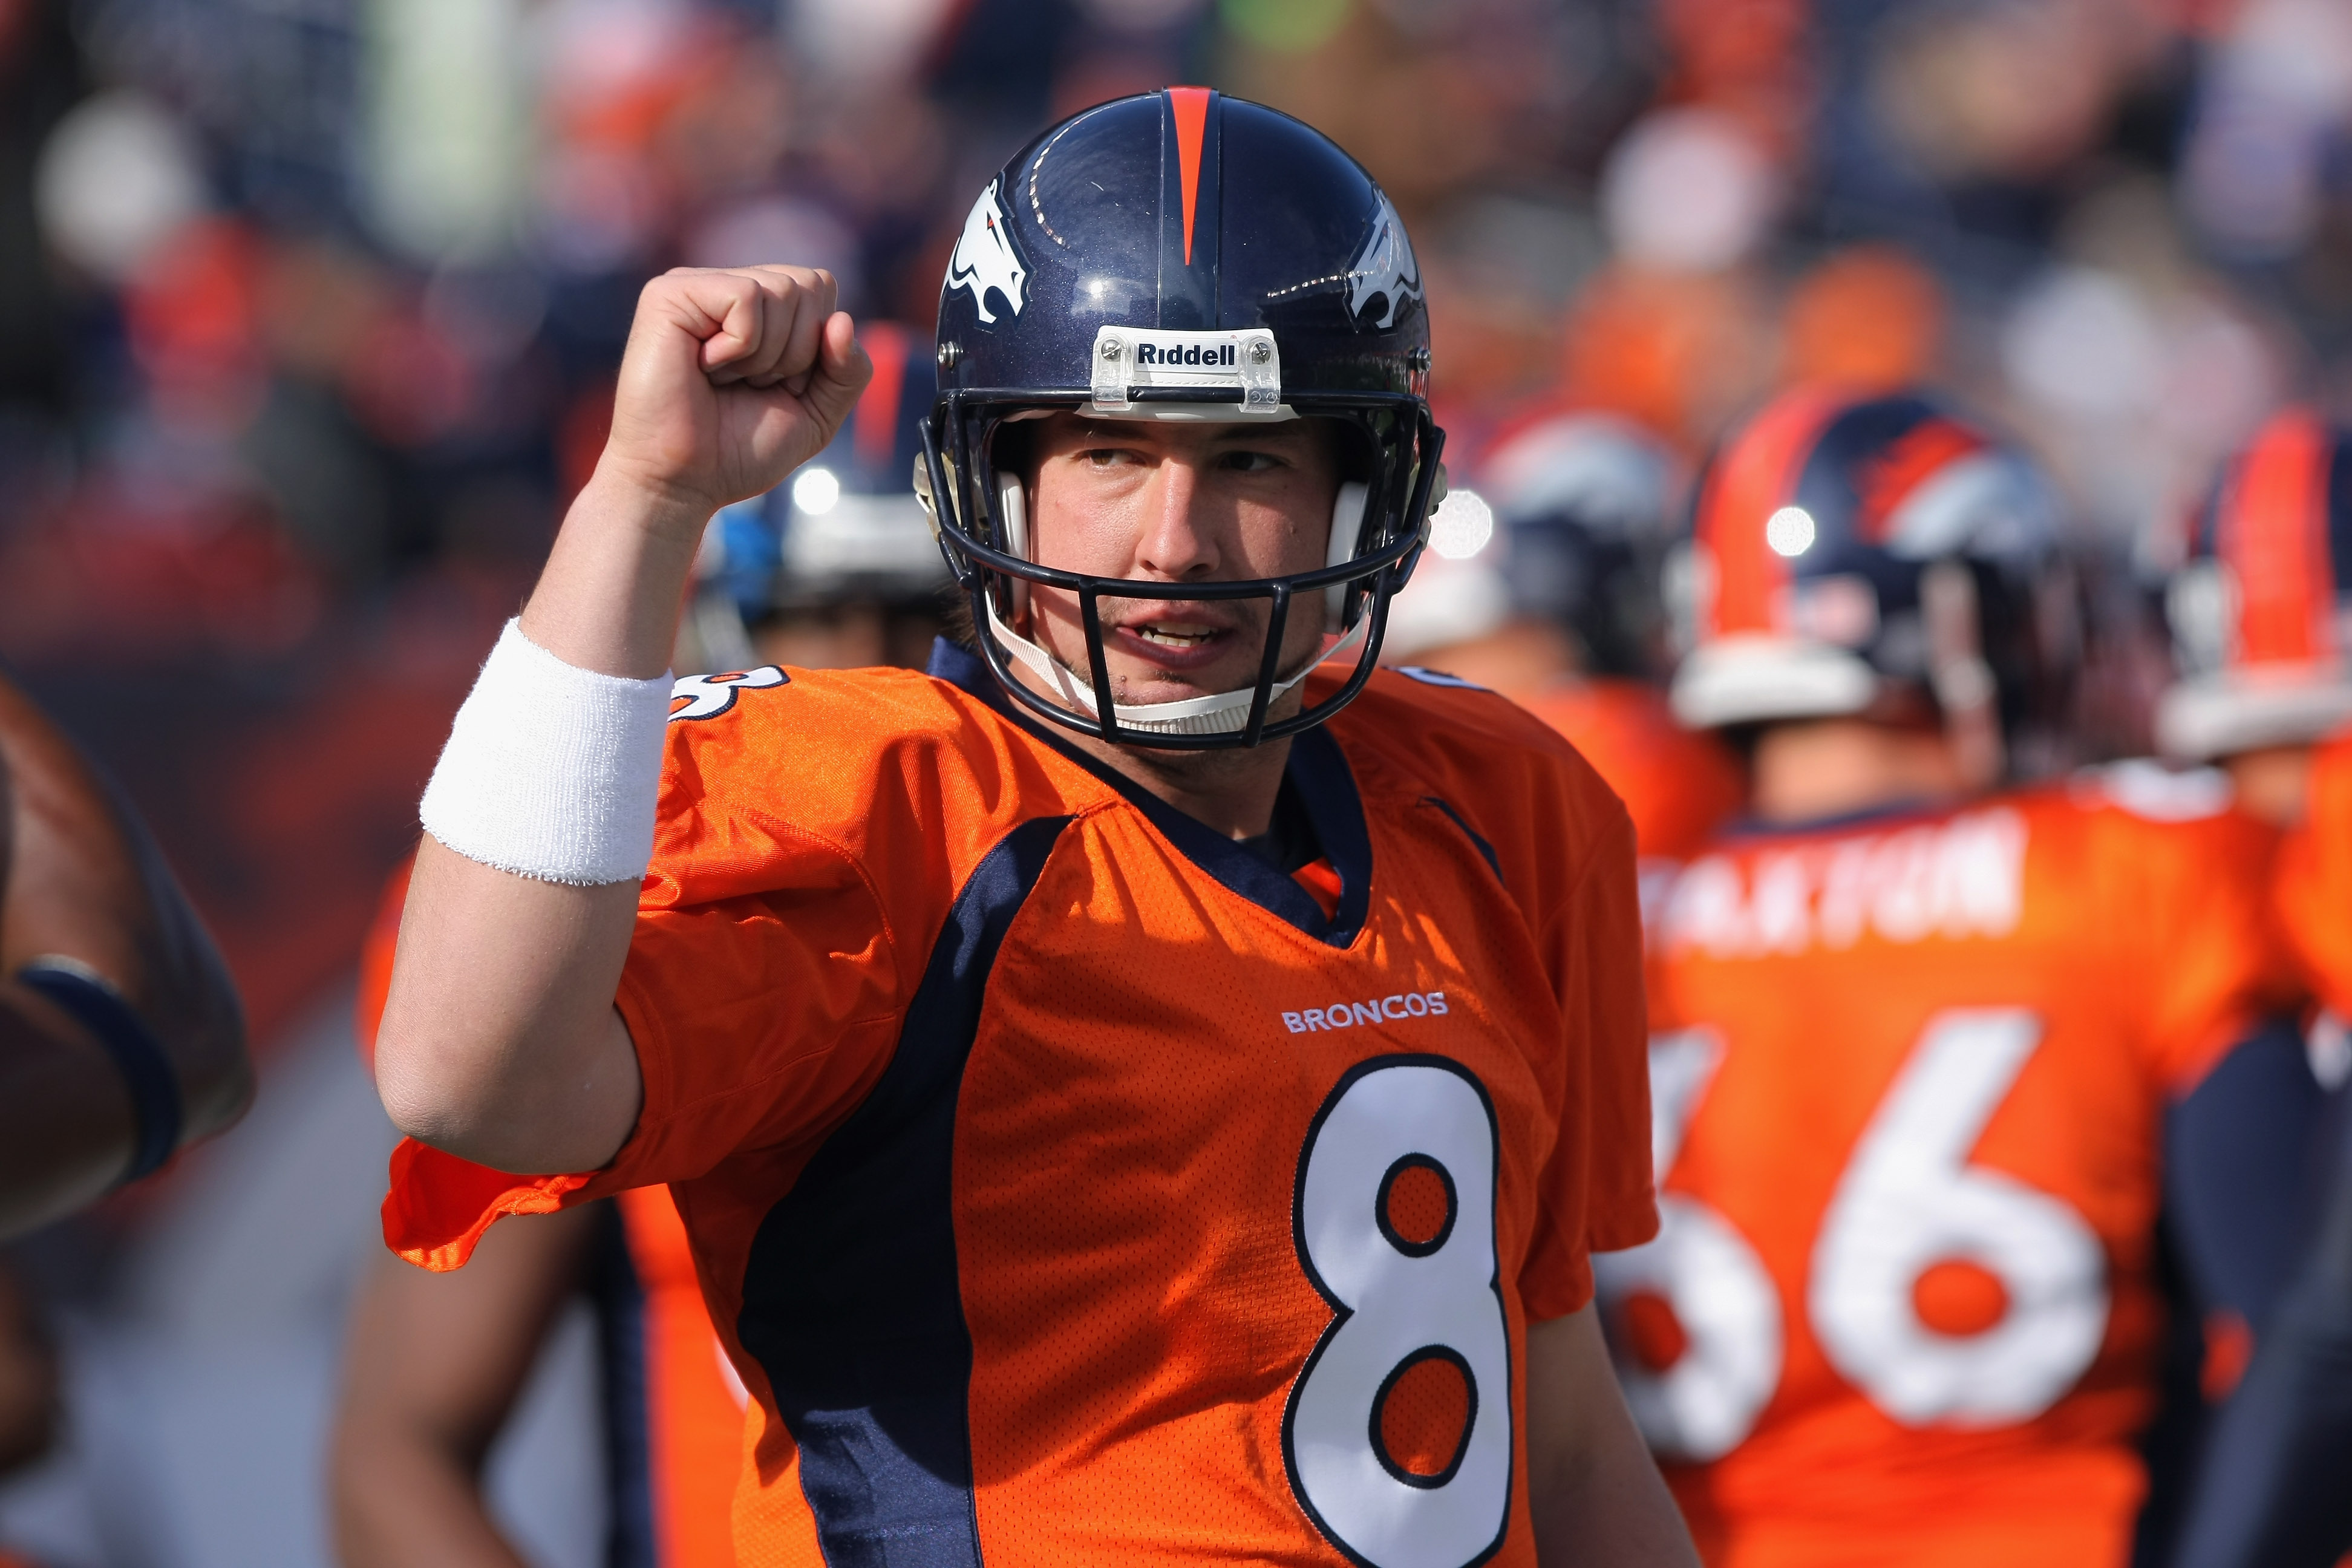 DENVER - NOVEMBER 14:  Quarterback Kyle Orton #8 of the Denver Broncos greets his teammates as they enter the field to face the Kansas City Chiefs at INVESCO Field at Mile High on November 14, 2010 in Denver, Colorado. The Broncos defeated the Chiefs 49-2